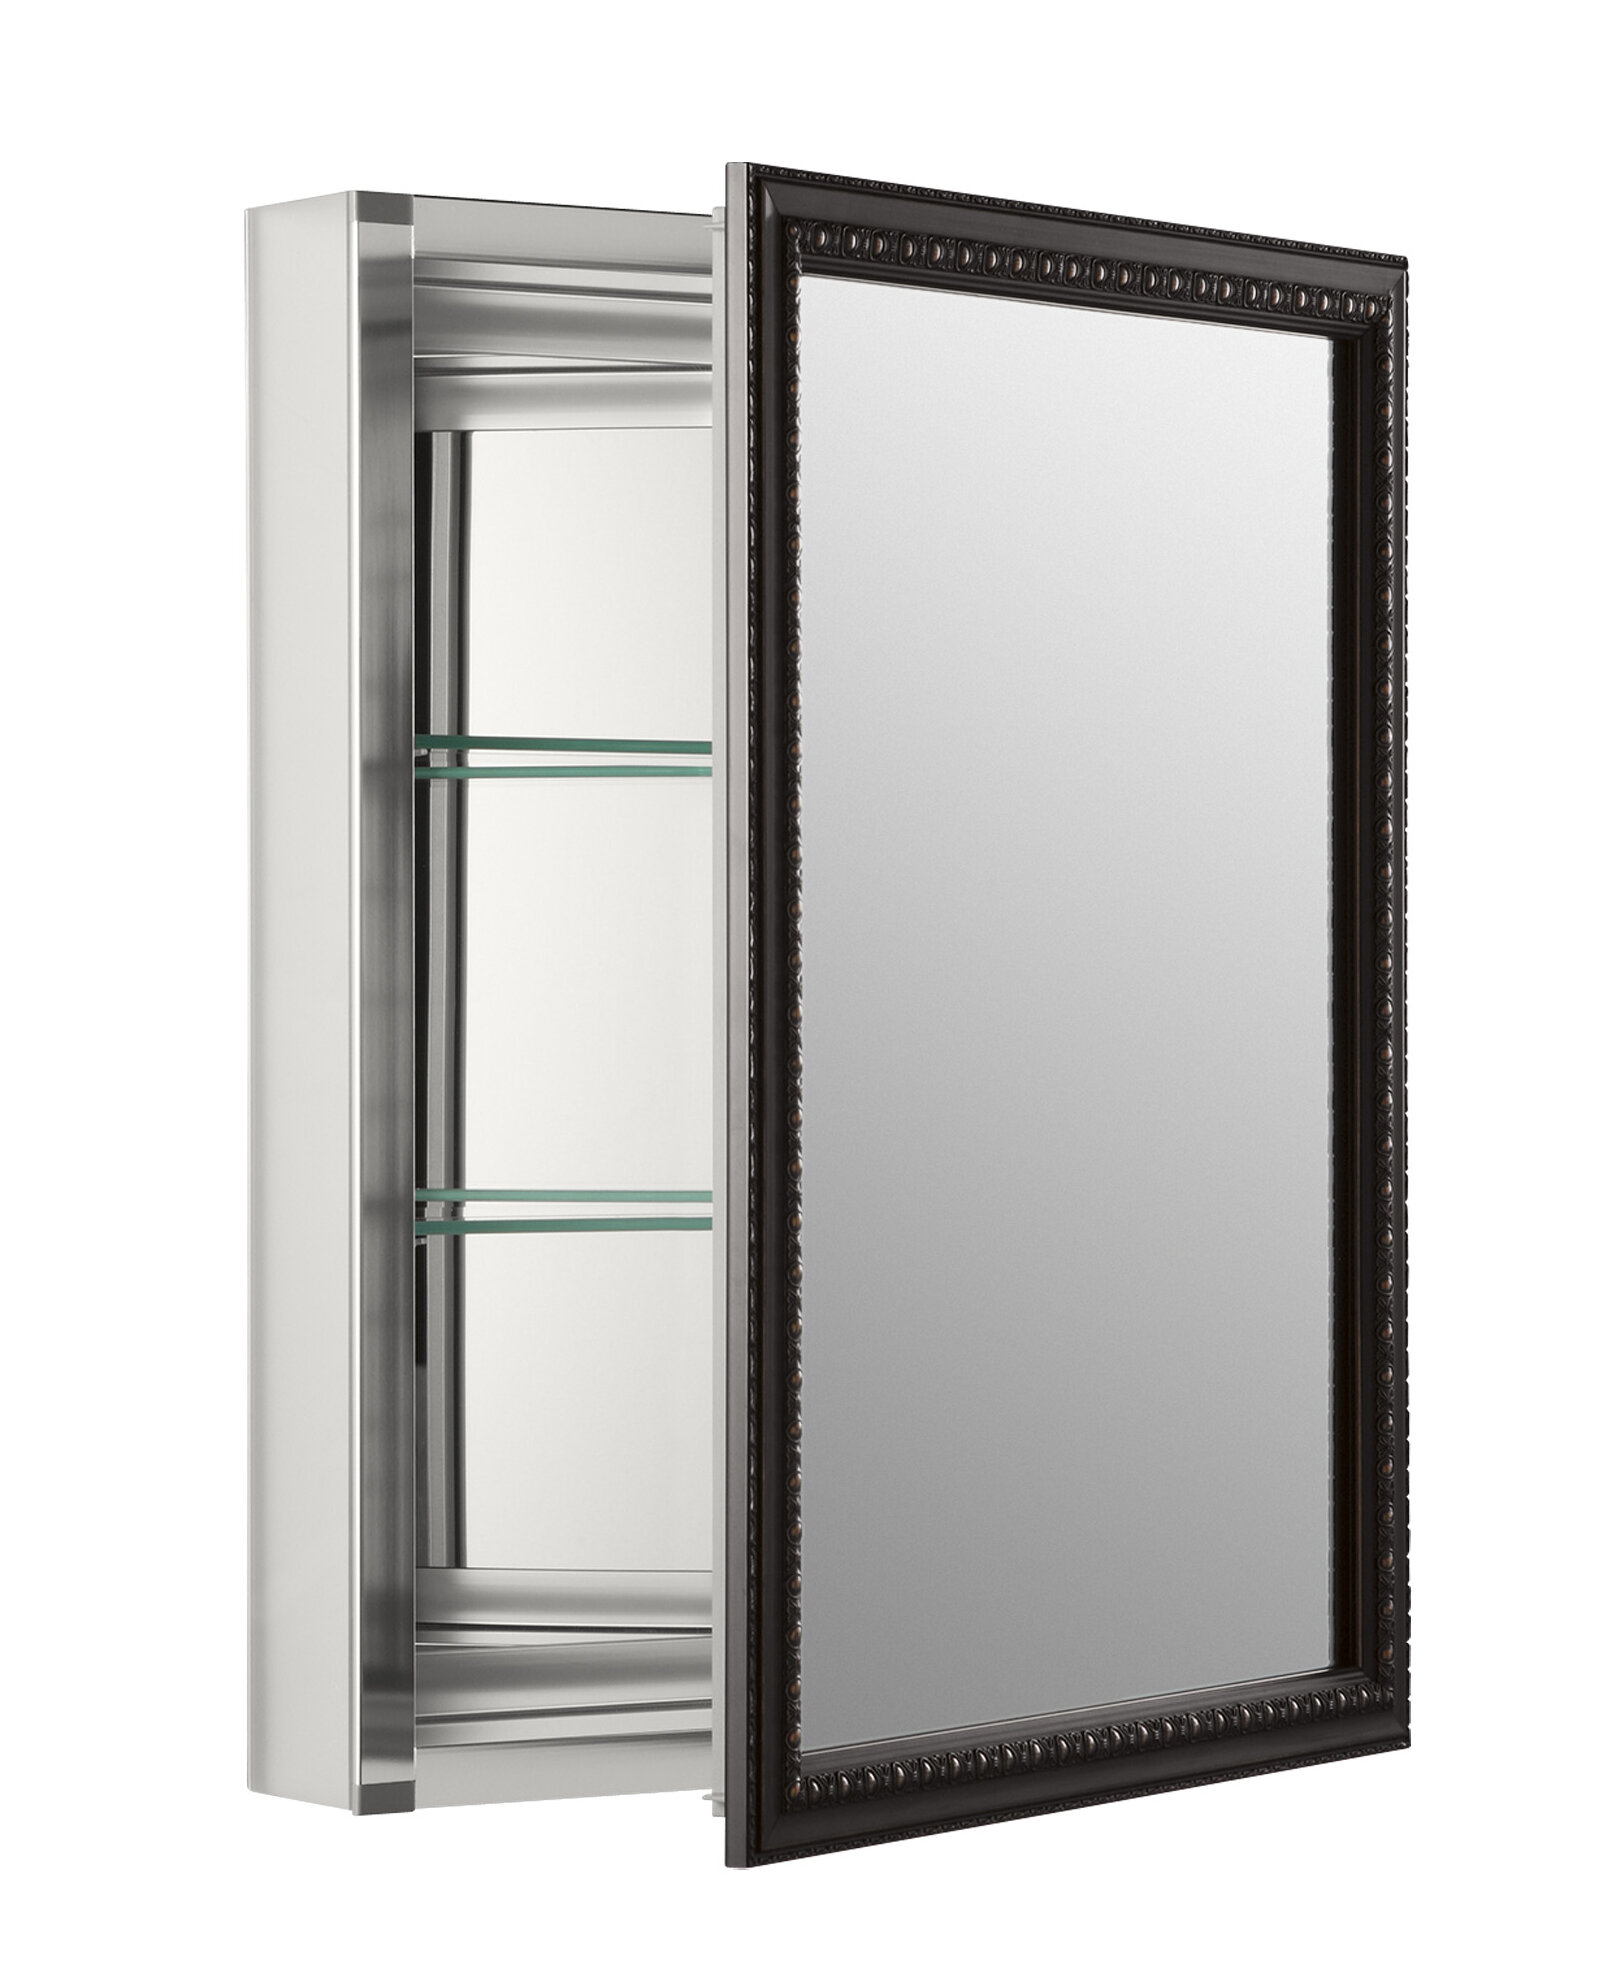 Kohler 20 X 26 Wall Mount Mirrored Medicine Cabinet With Mirrored